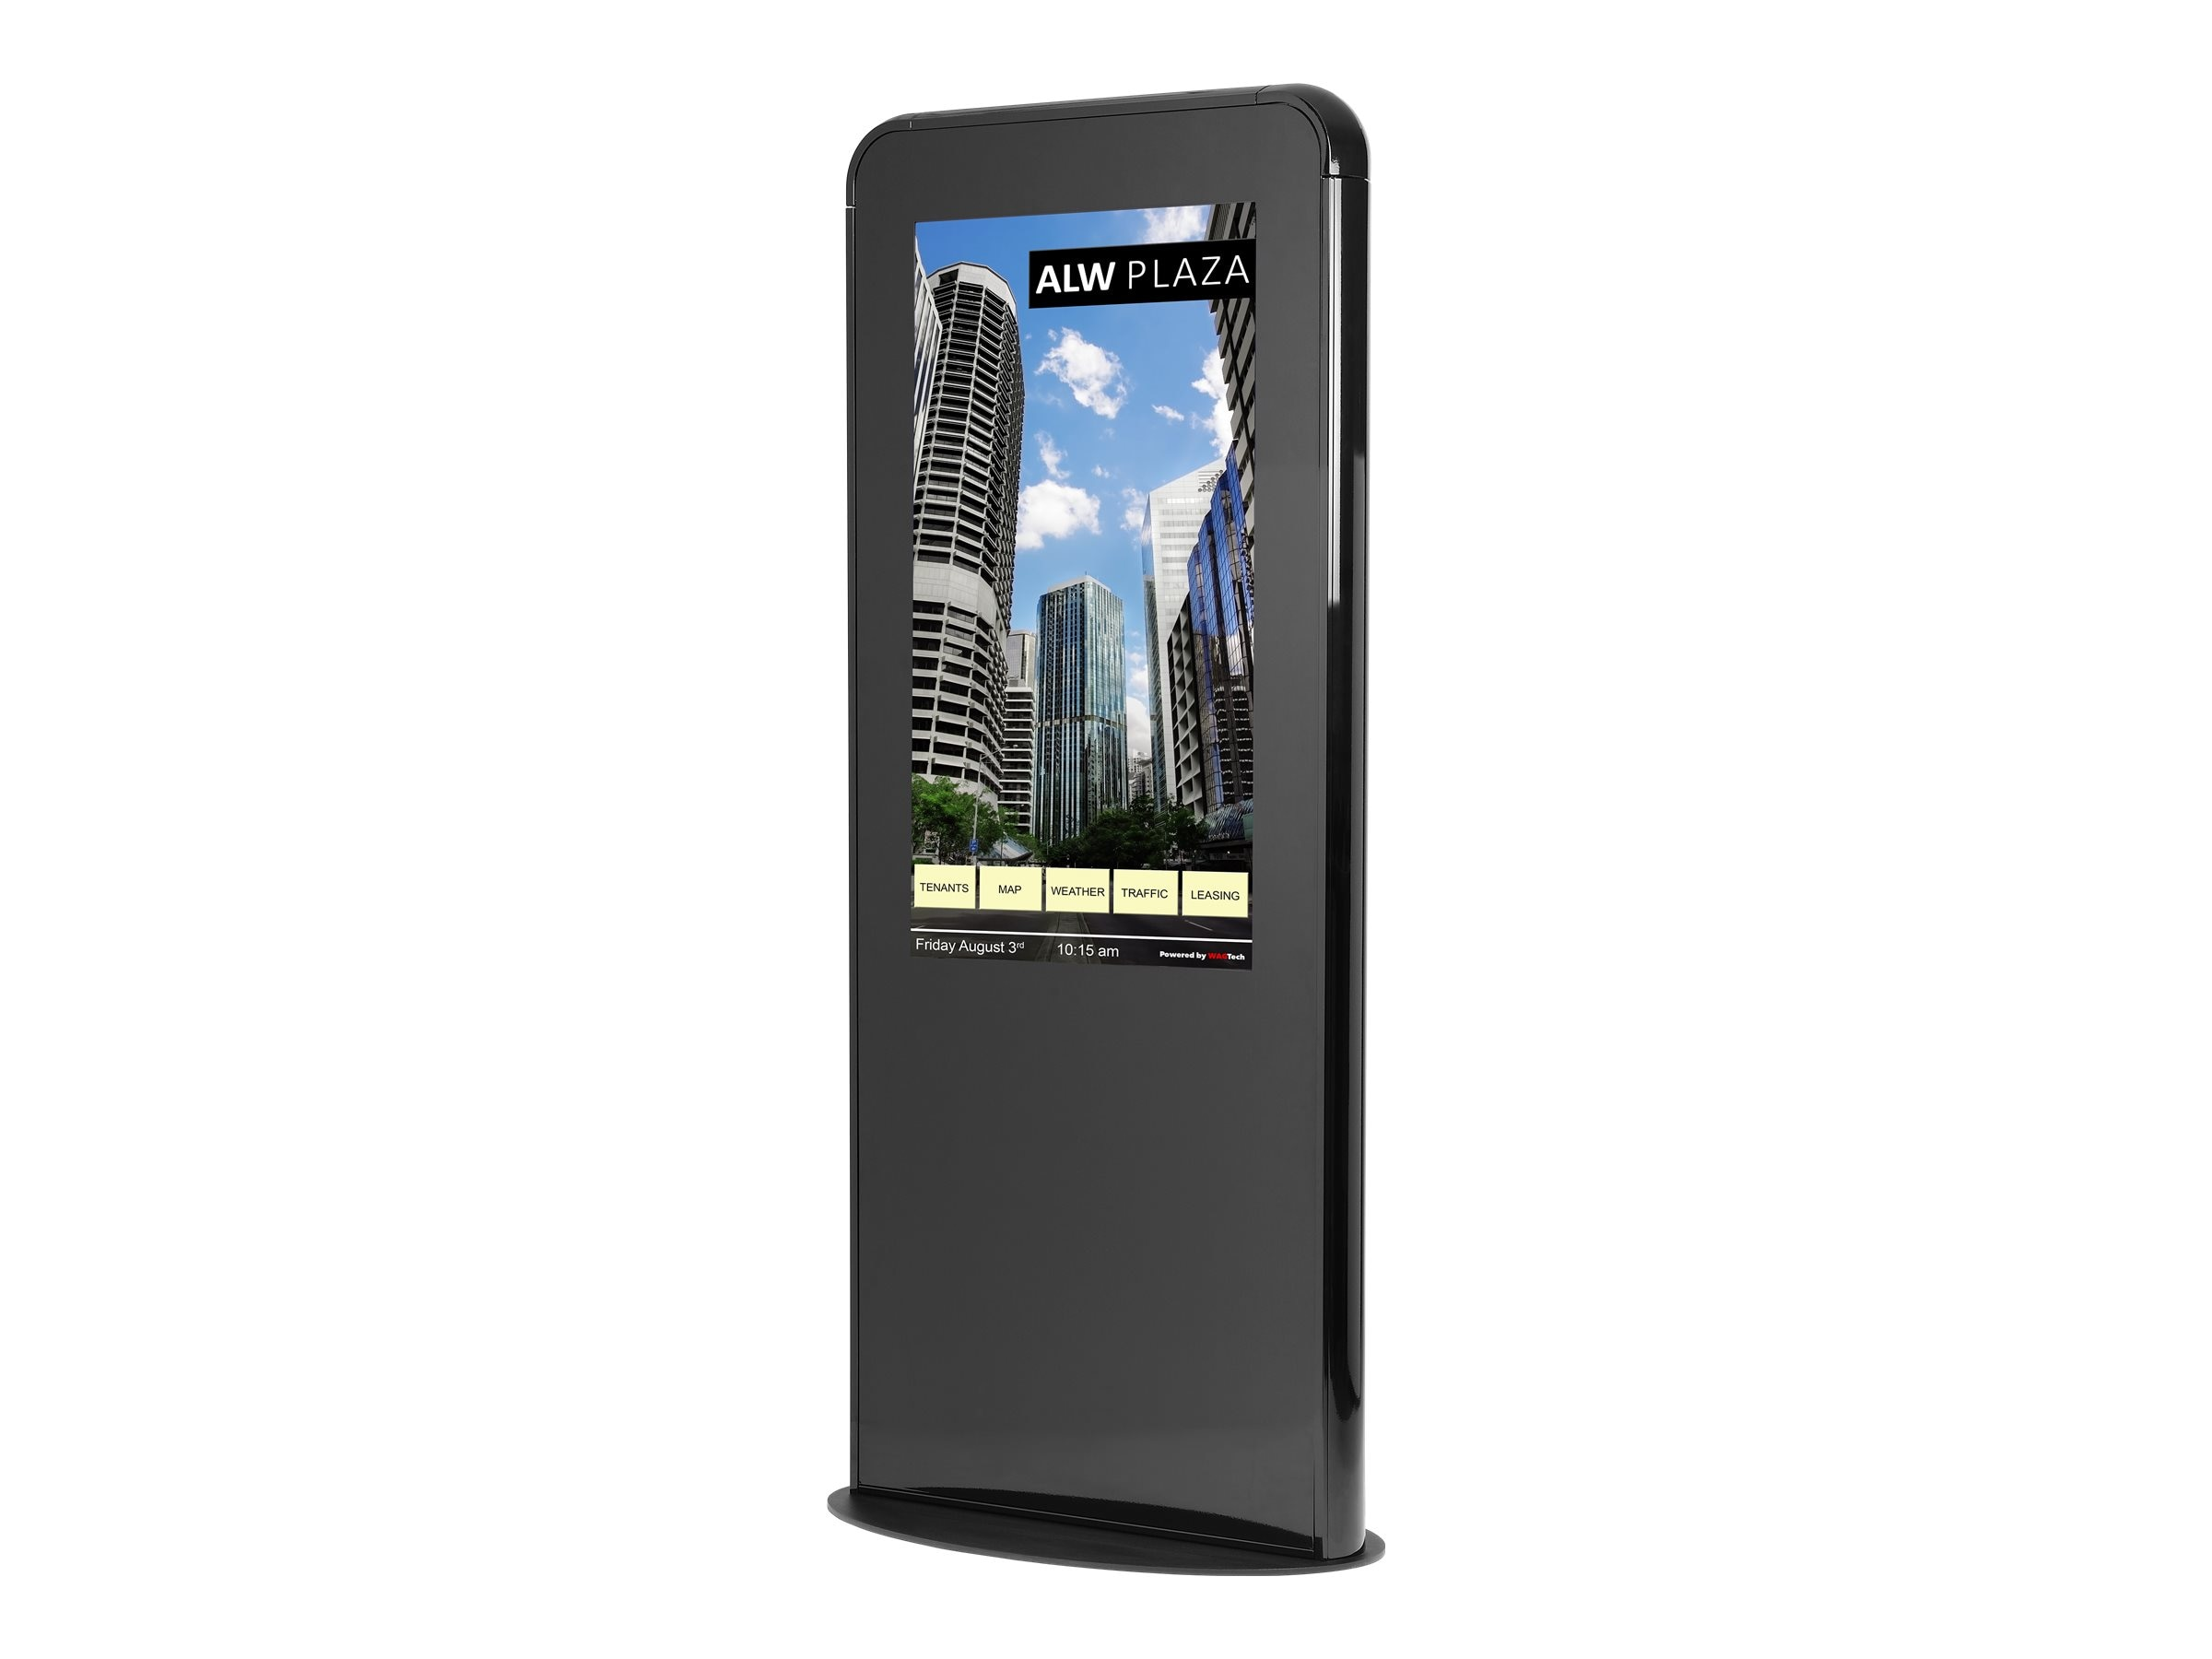 NEC 46 Full HD LED-LCD Touchscreen Portait Kiosk, Silver